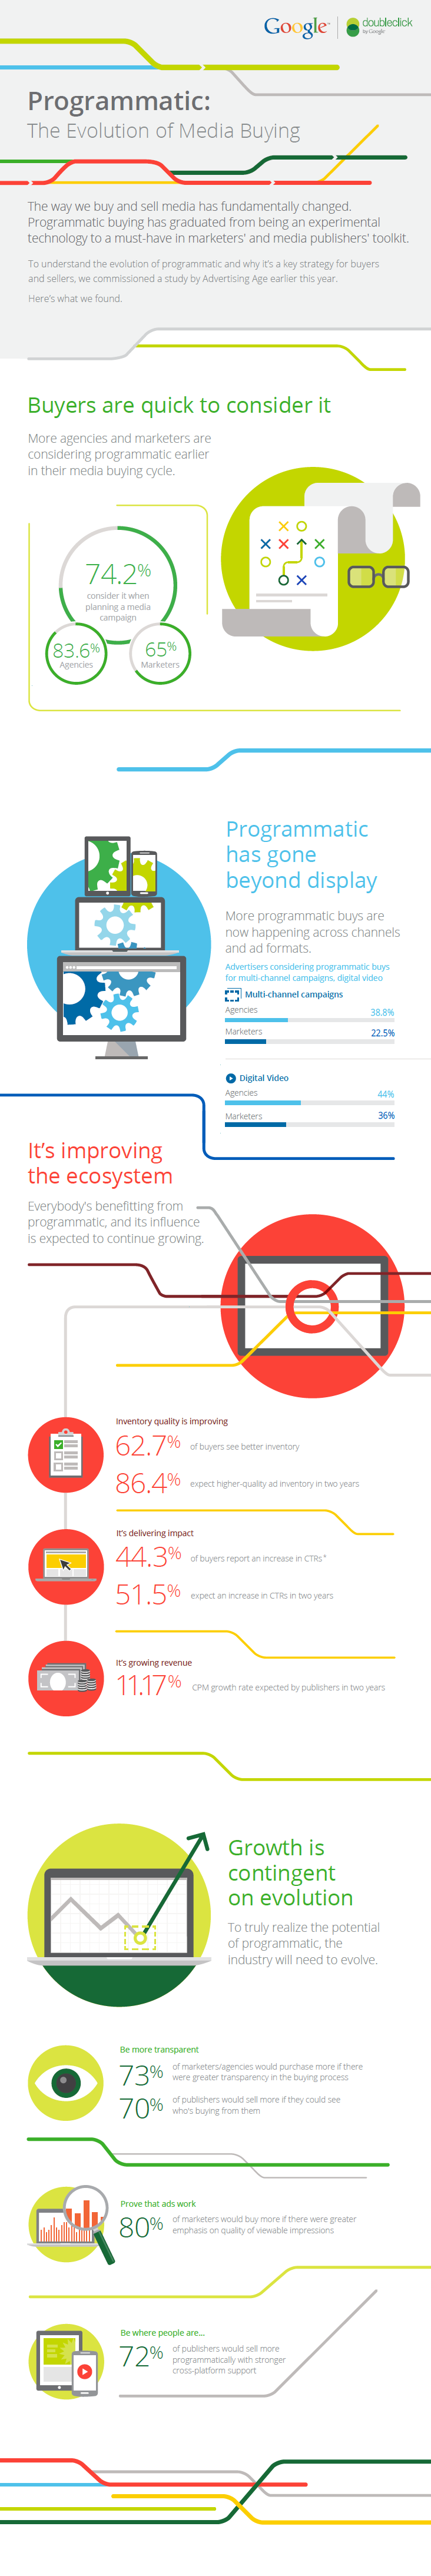 Programmatic : The evolution of media buying by Google